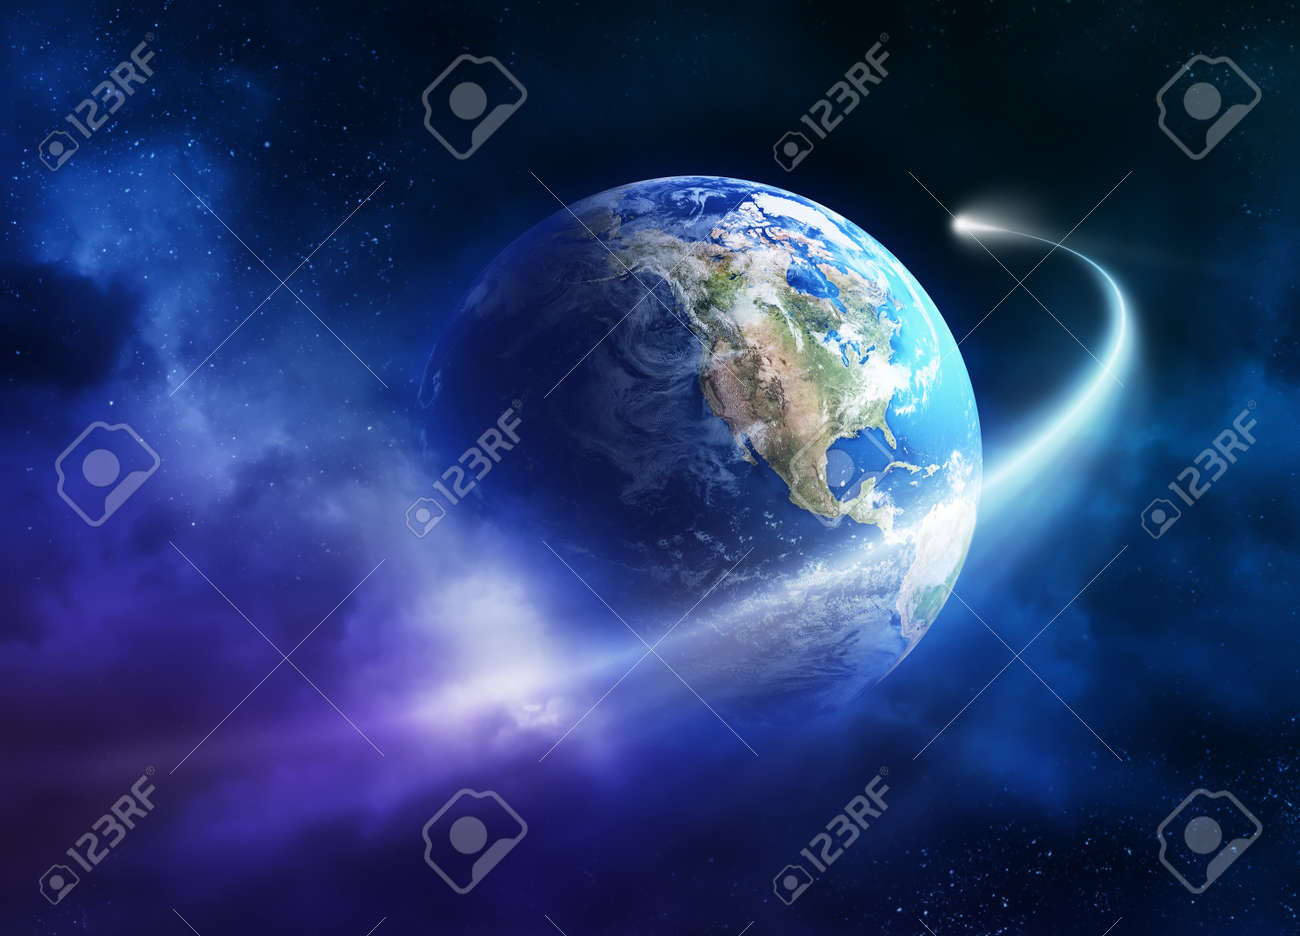 Comet passing earth in a nebula cloud Stock Photo - 8903843